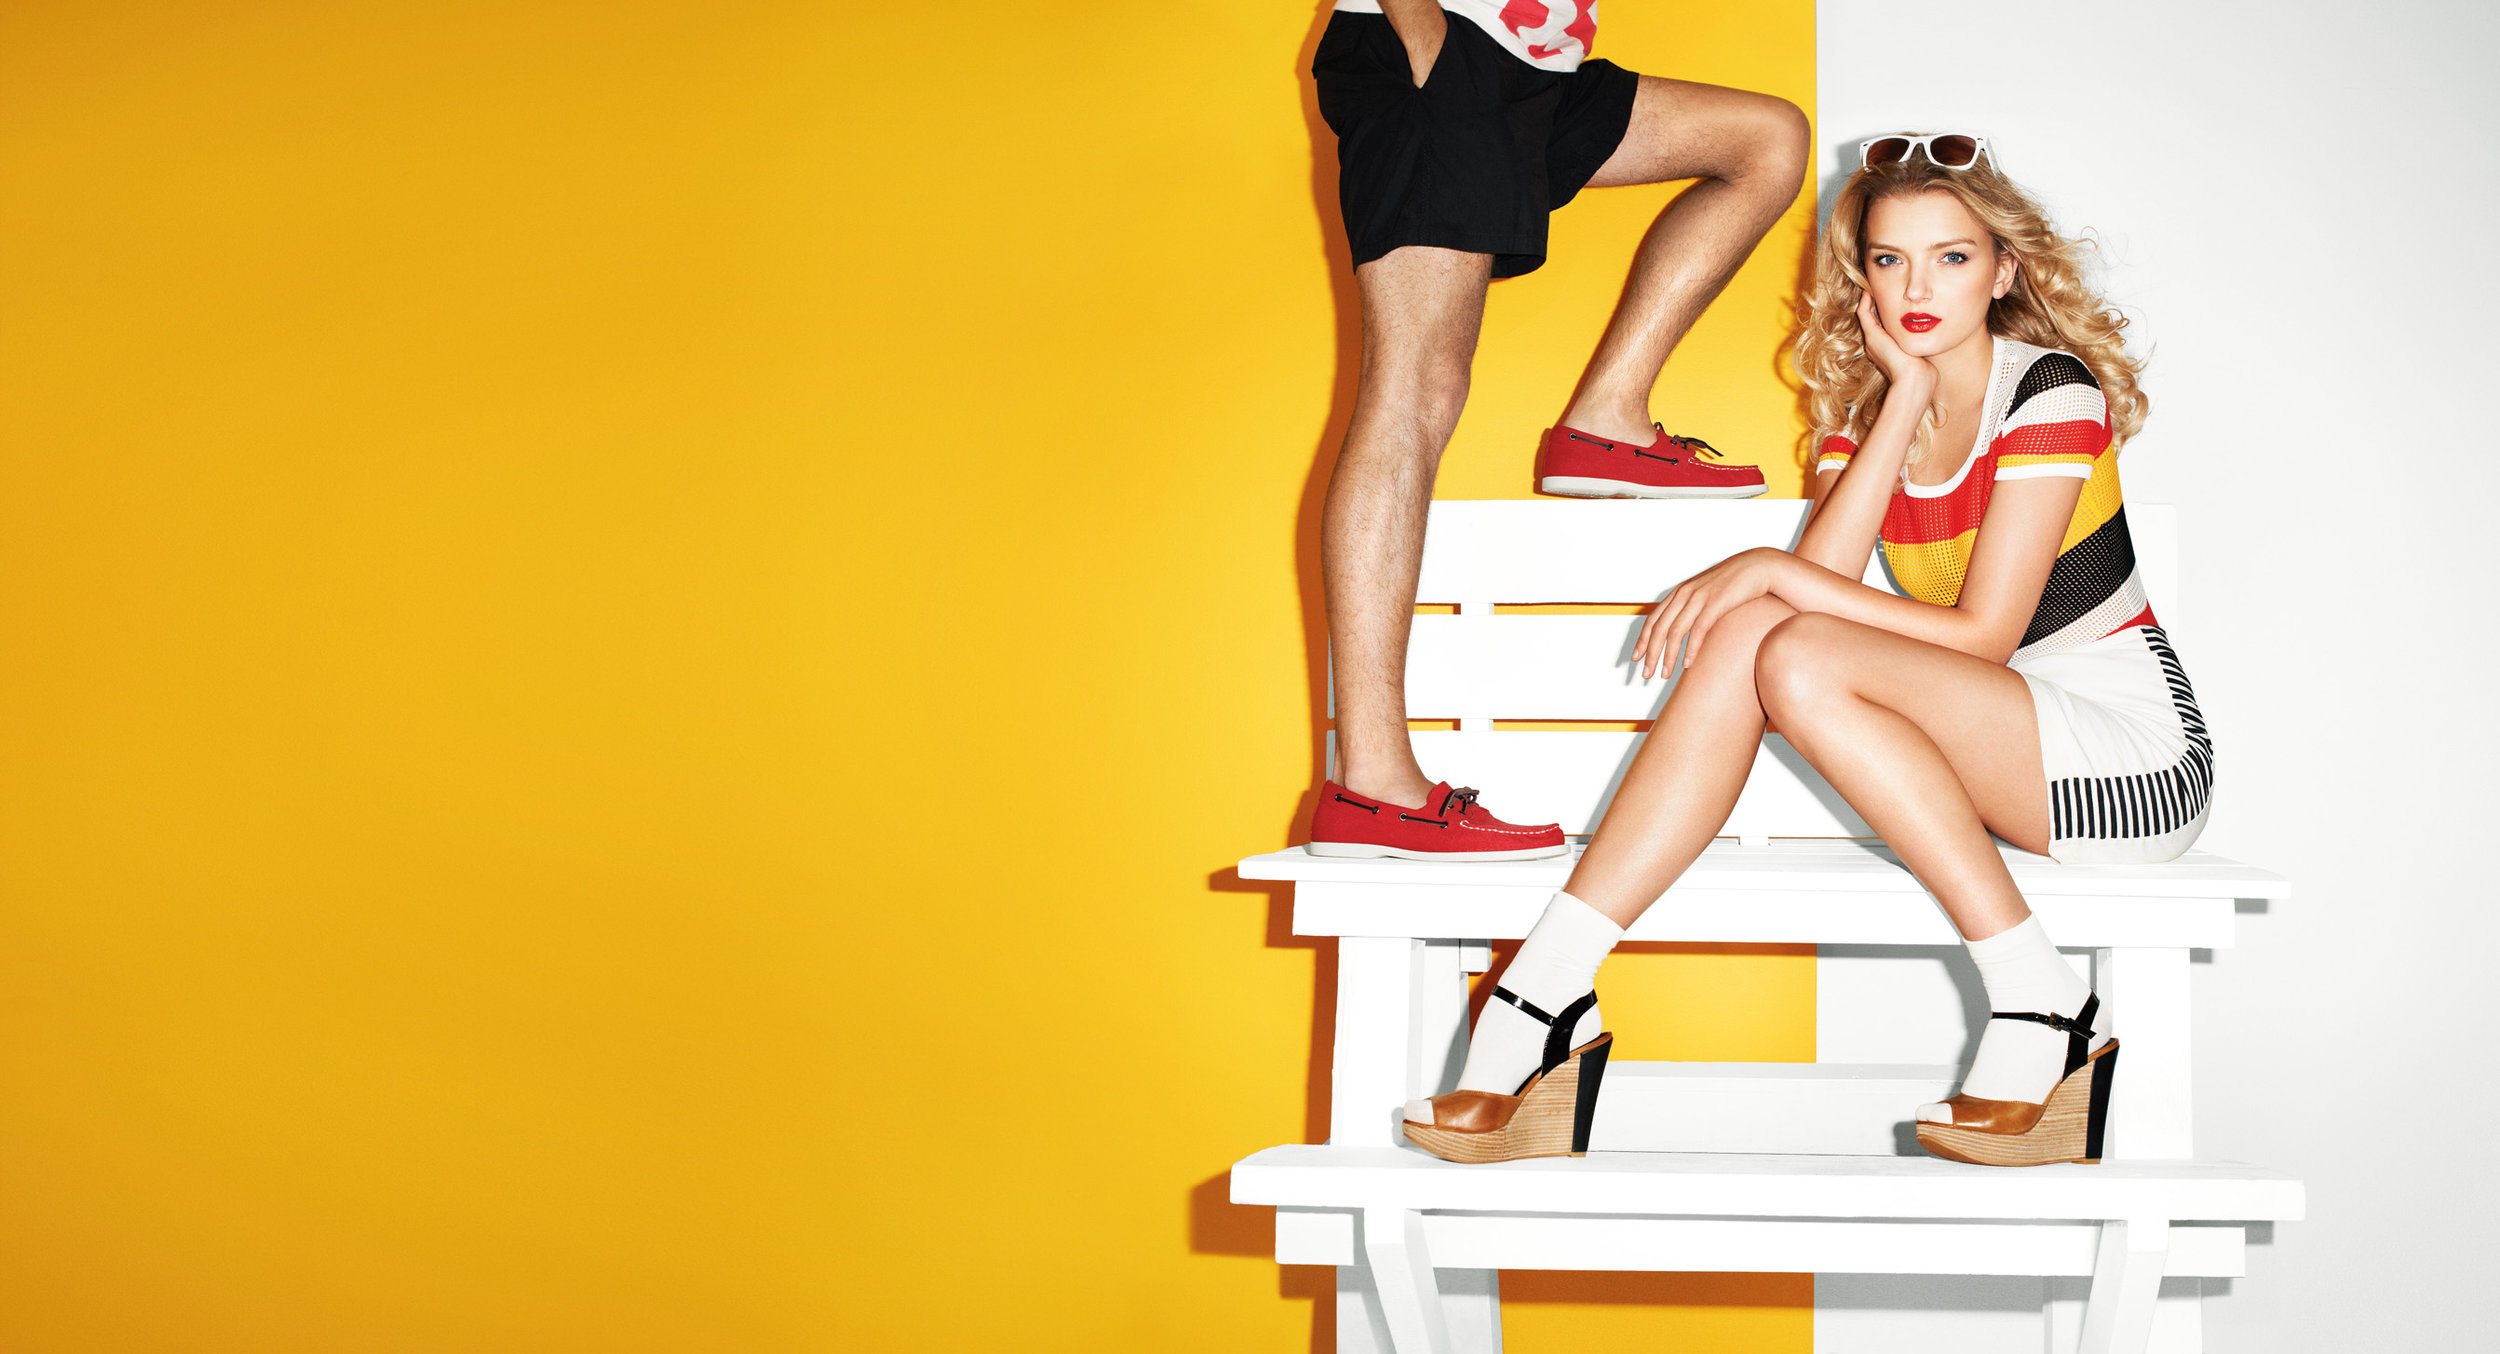 ALDO_003_by-Terry-Richardson-with-Lily-Donaldson.jpg